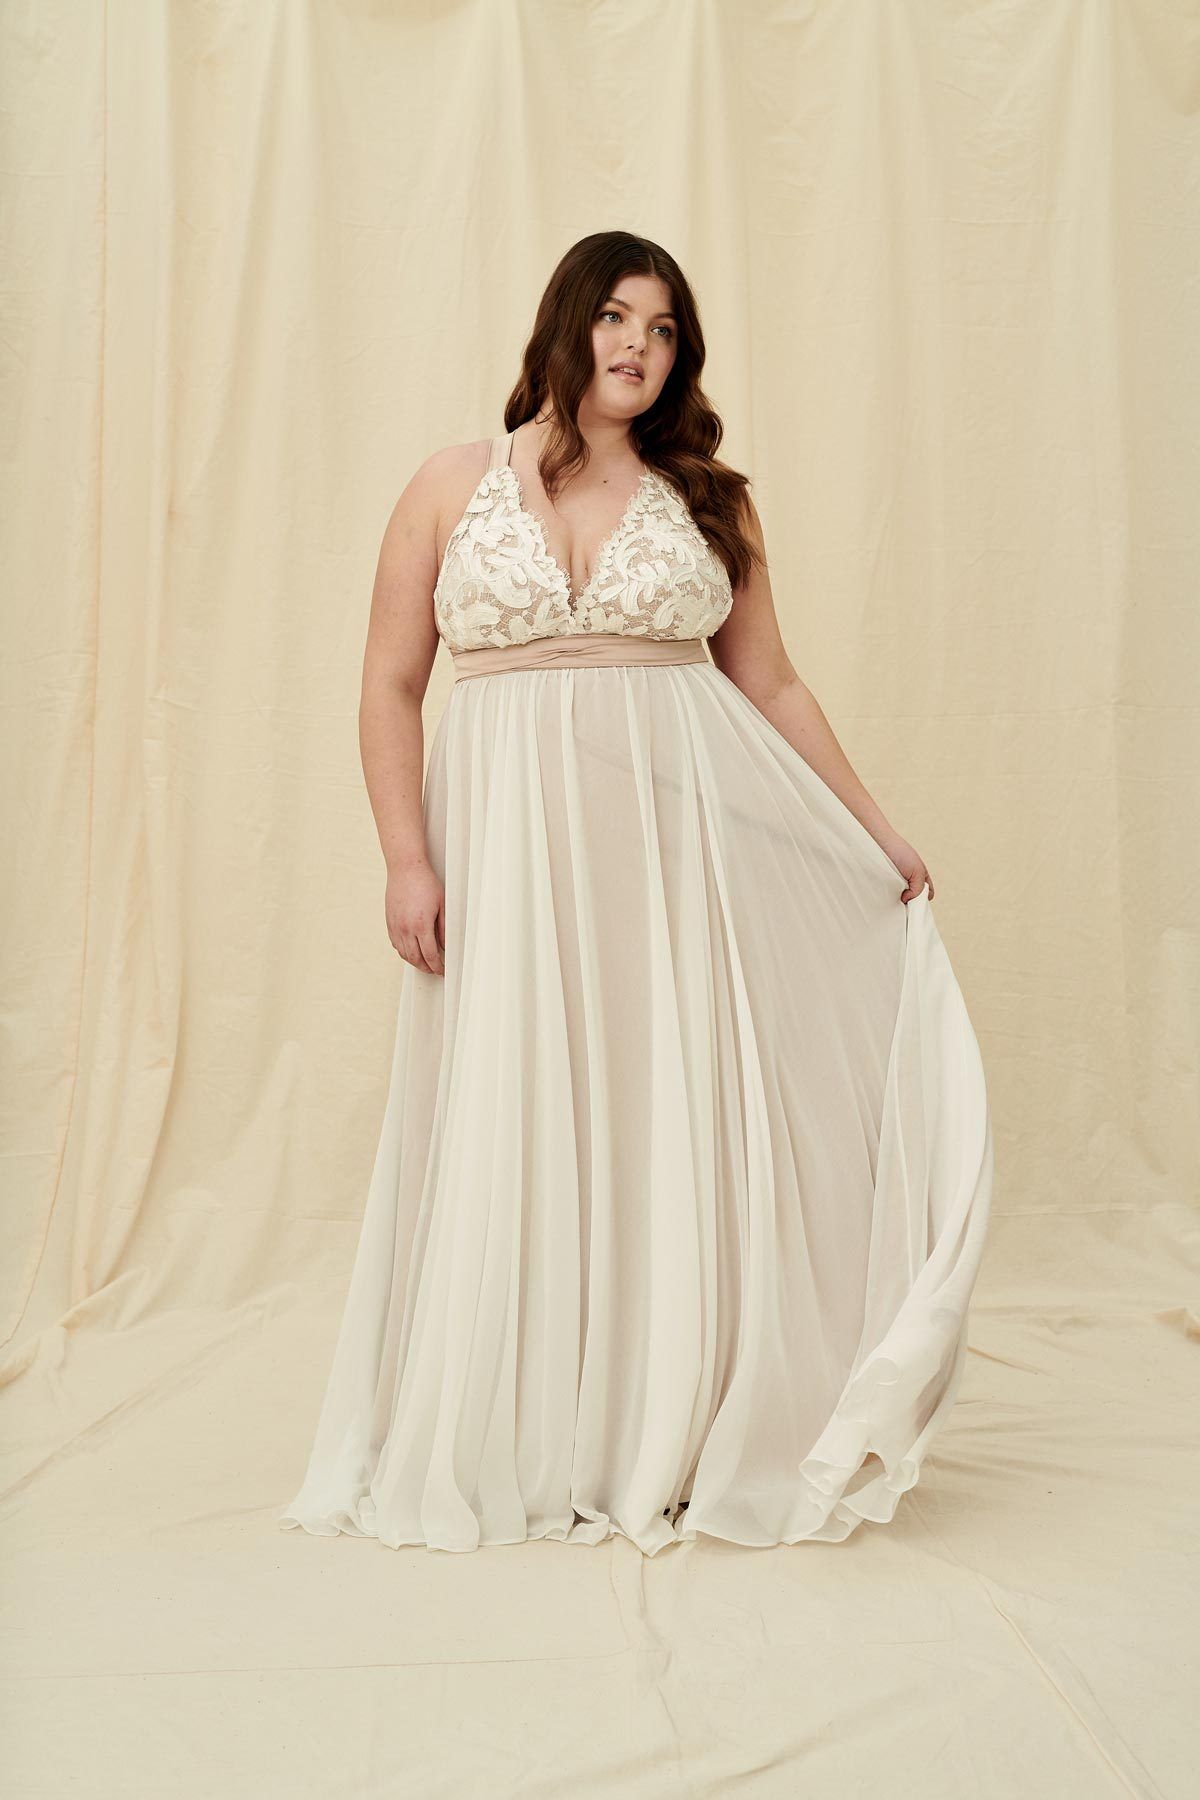 Truvelle Carrall Curve A Modern Plus Size Wedding Dress With A Plunging Neckline Featuring Satin Wrap Ties And Wedding Dresses Wedding Dress Shopping Dresses [ 1800 x 1200 Pixel ]